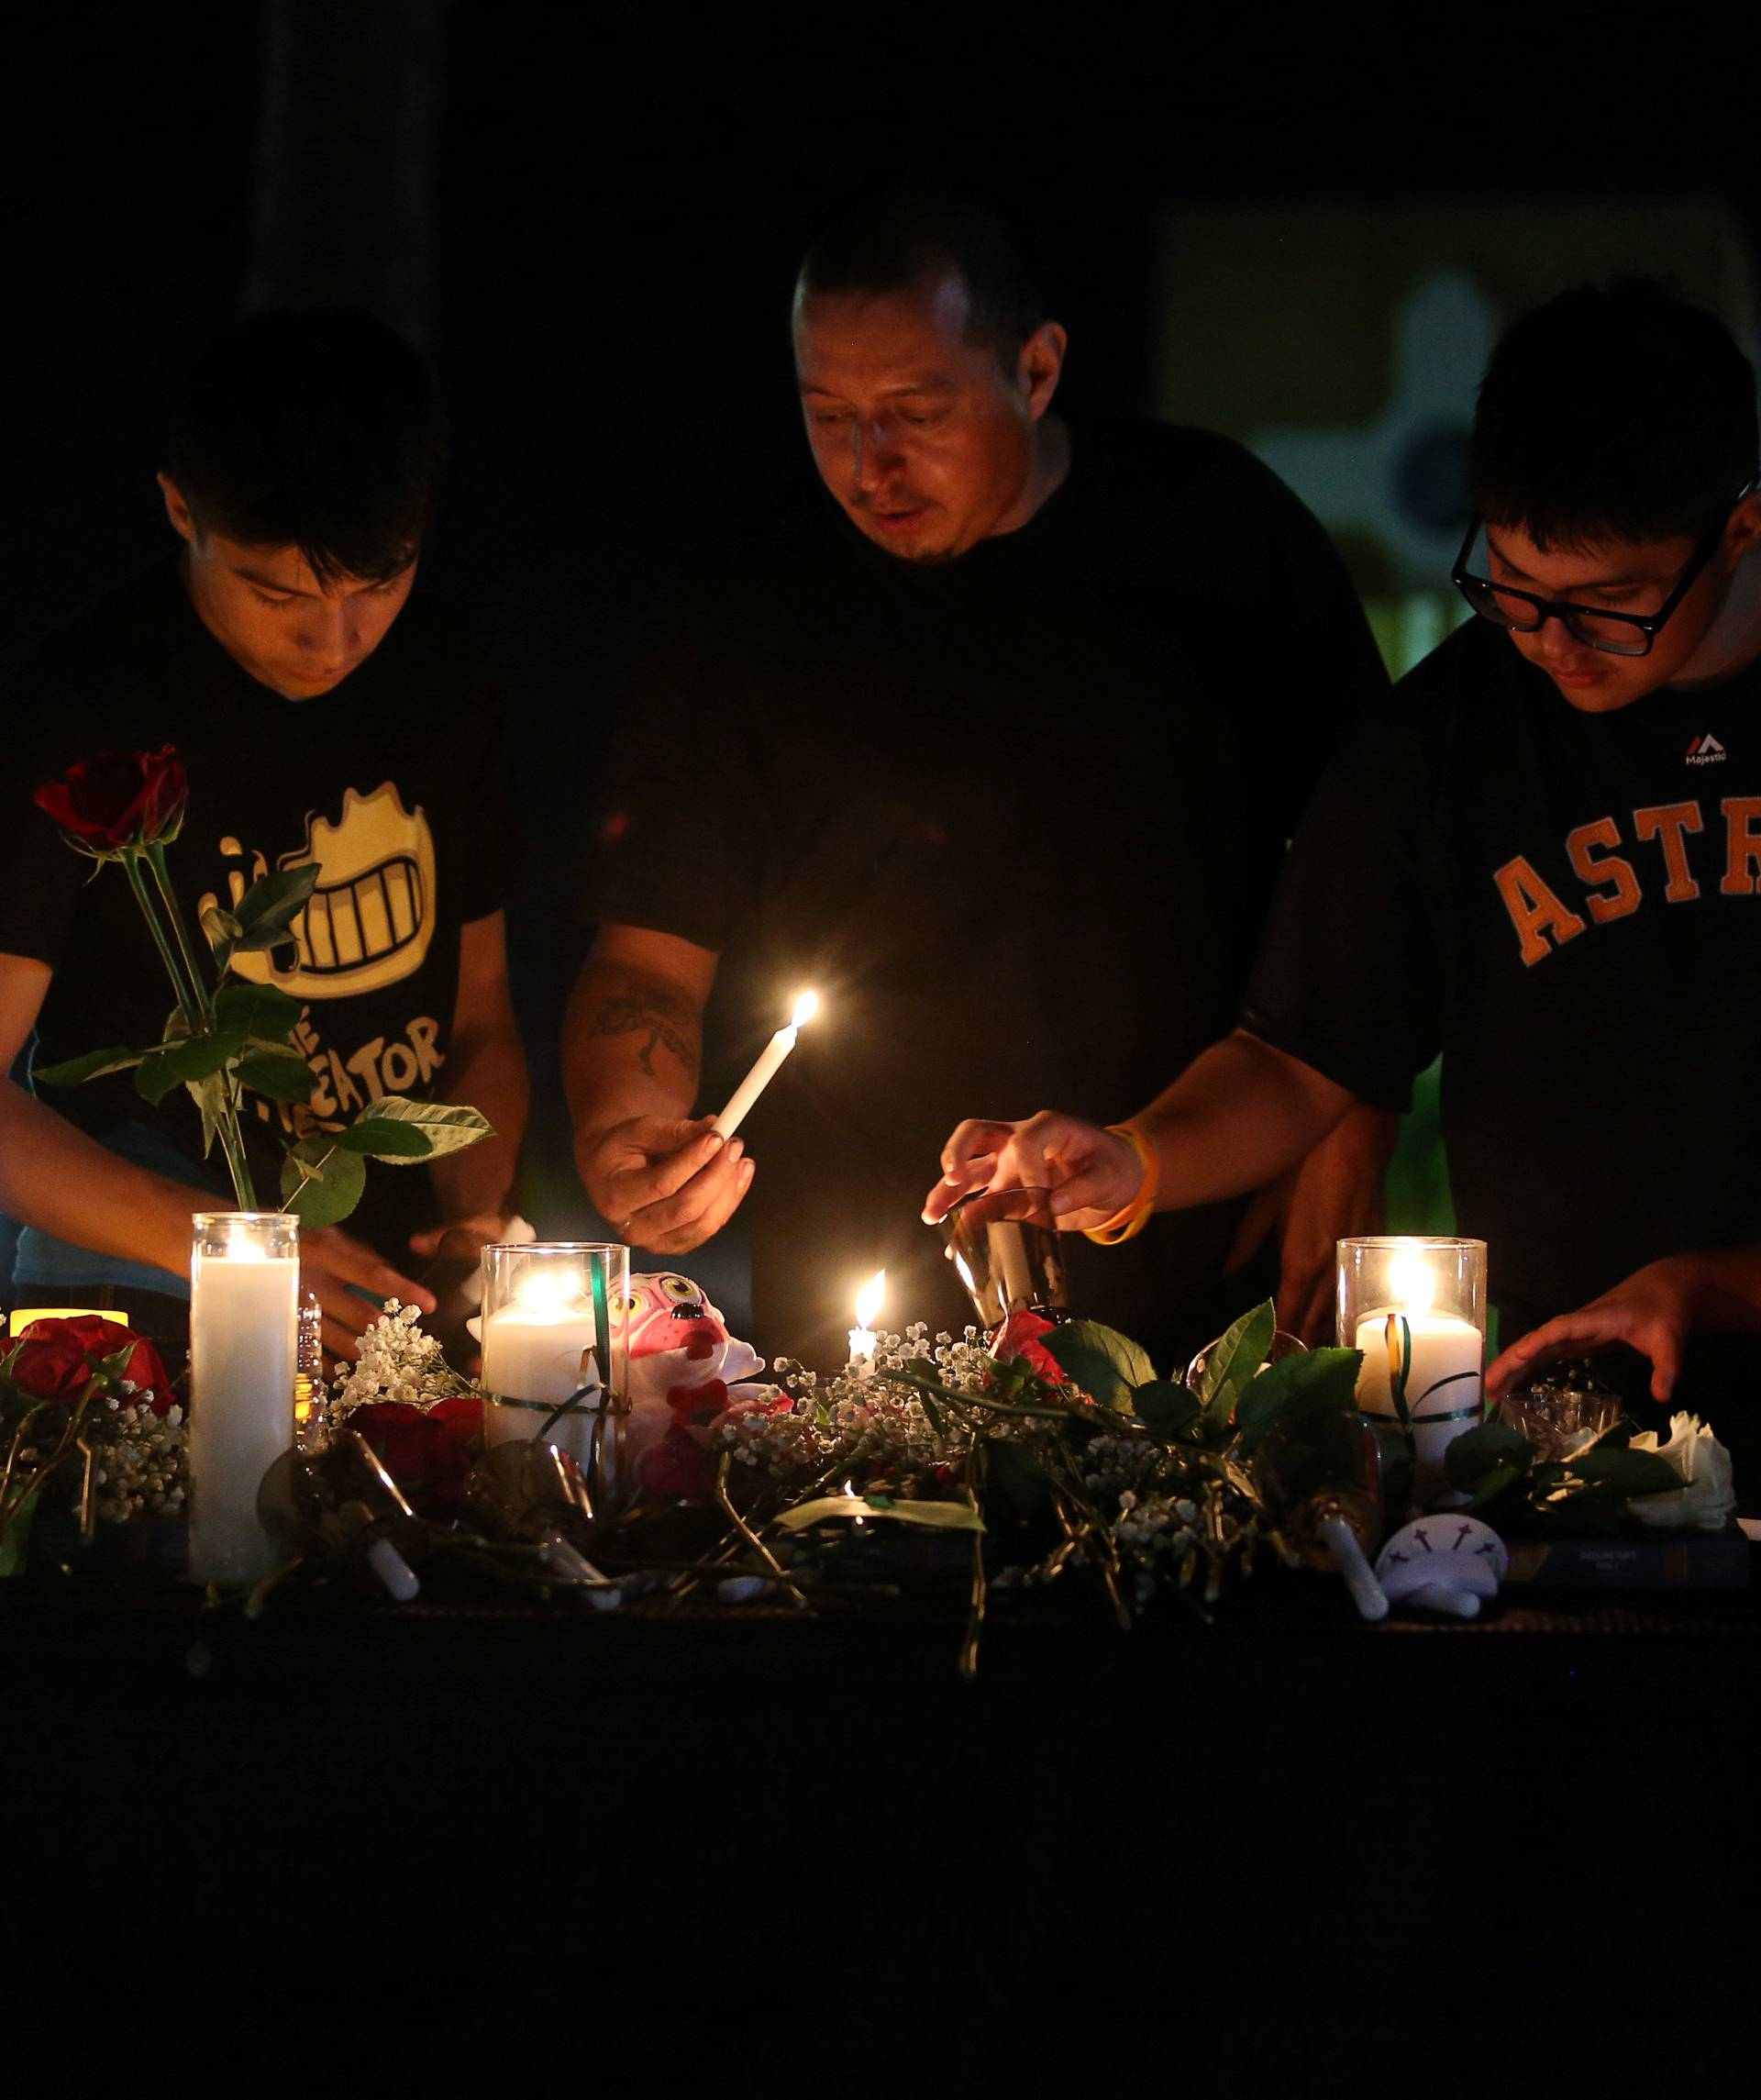 Attendees light a candle to pay their respects to the victims of a shooting at Santa Fe High School that left several dead and injured in Santa Fe, Texas